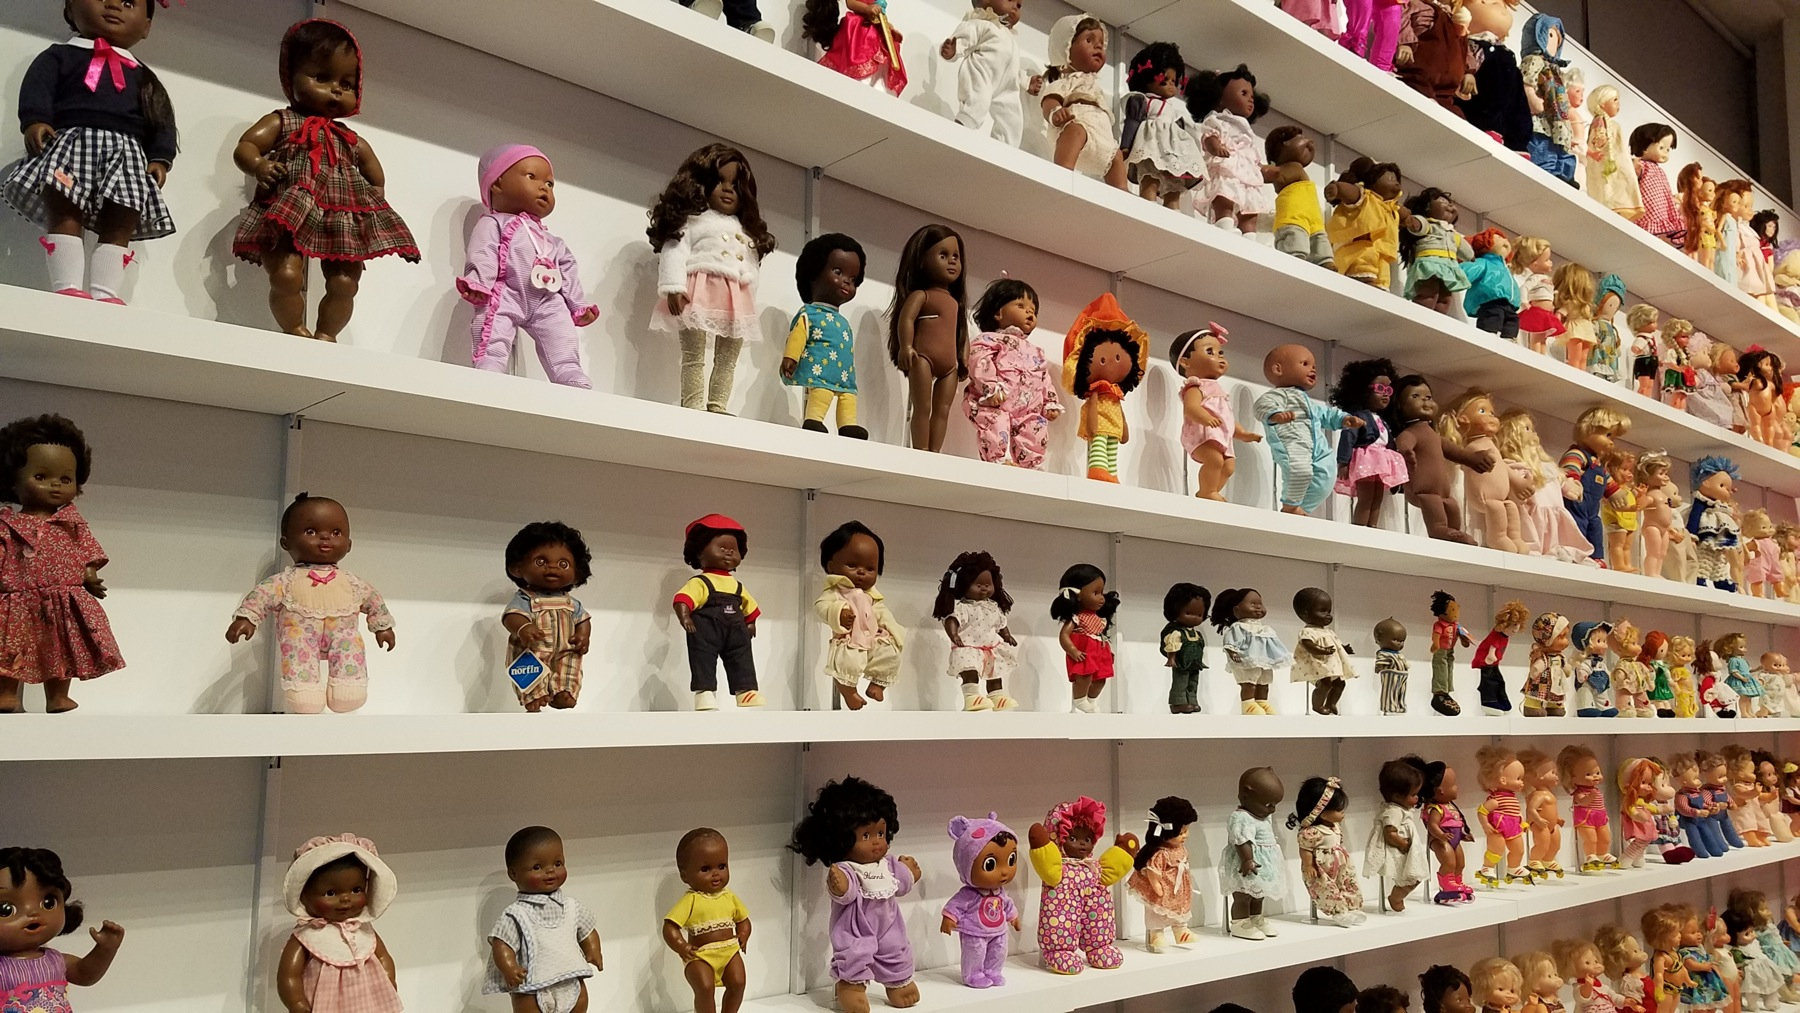 Whiteman's dolls, on the left side of the wall, are all black. Hancock's on the right are all white.